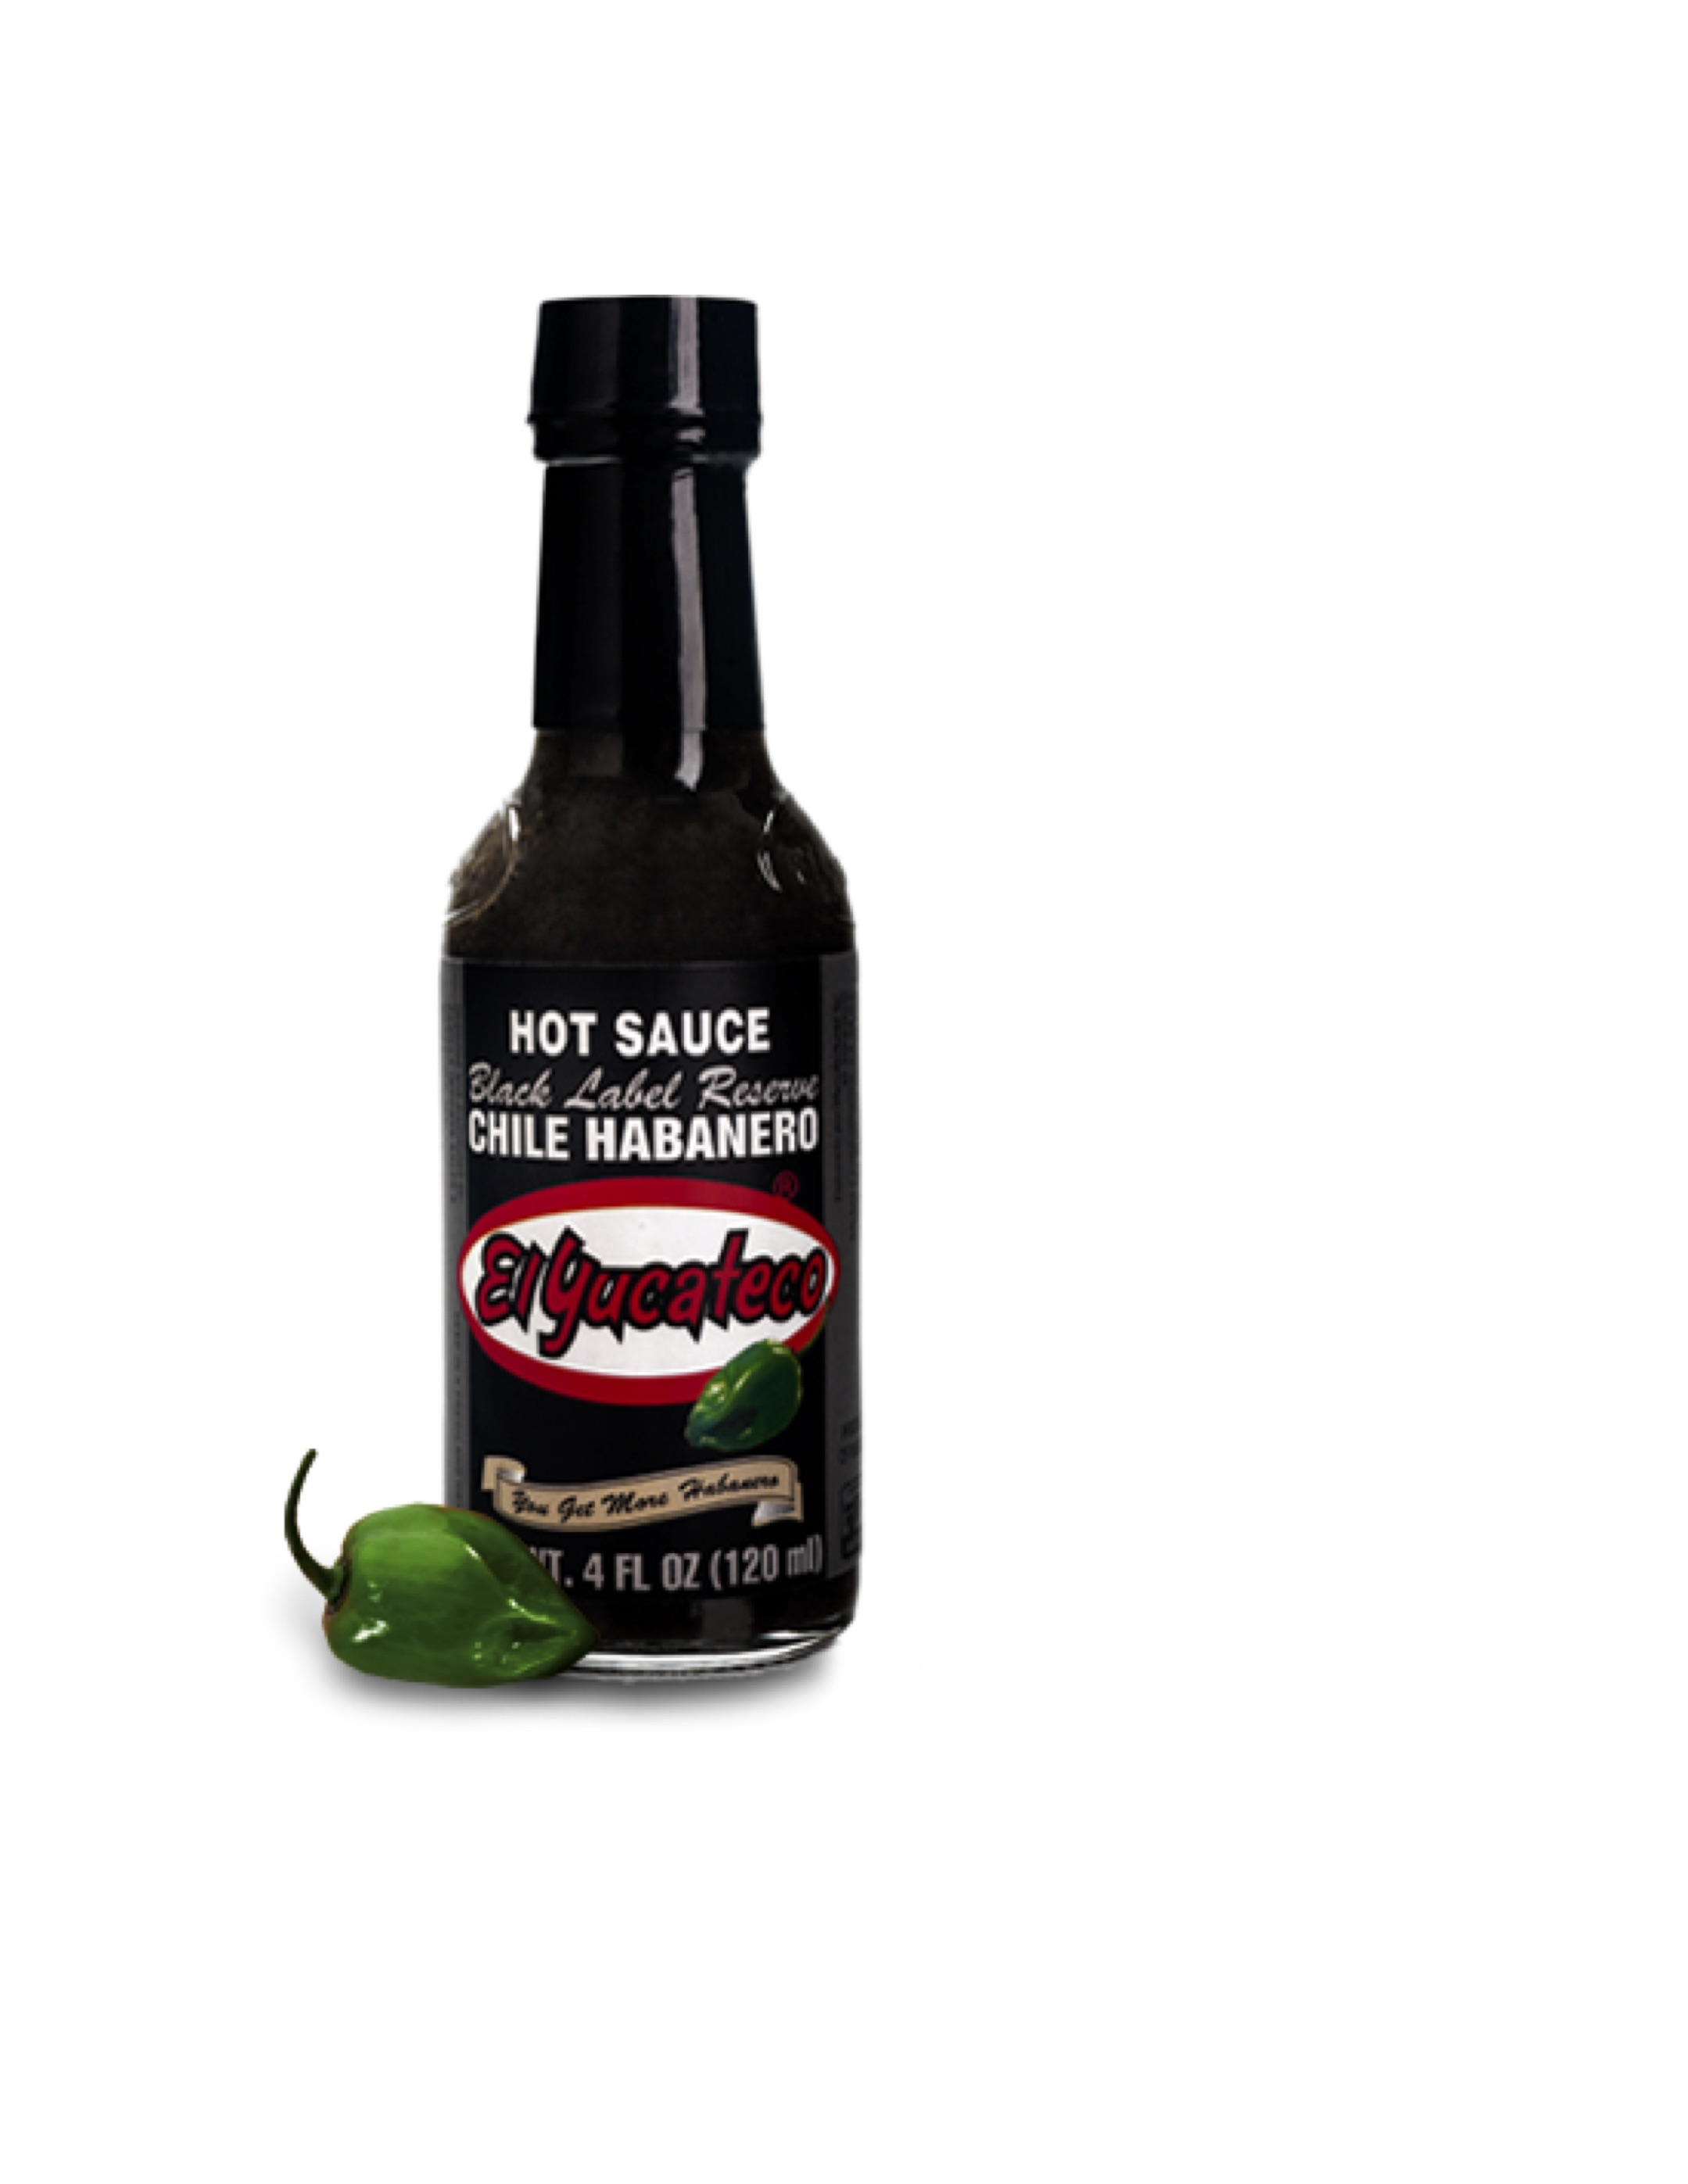 It's just a photo of Dramatic Valentina Black Label Scoville